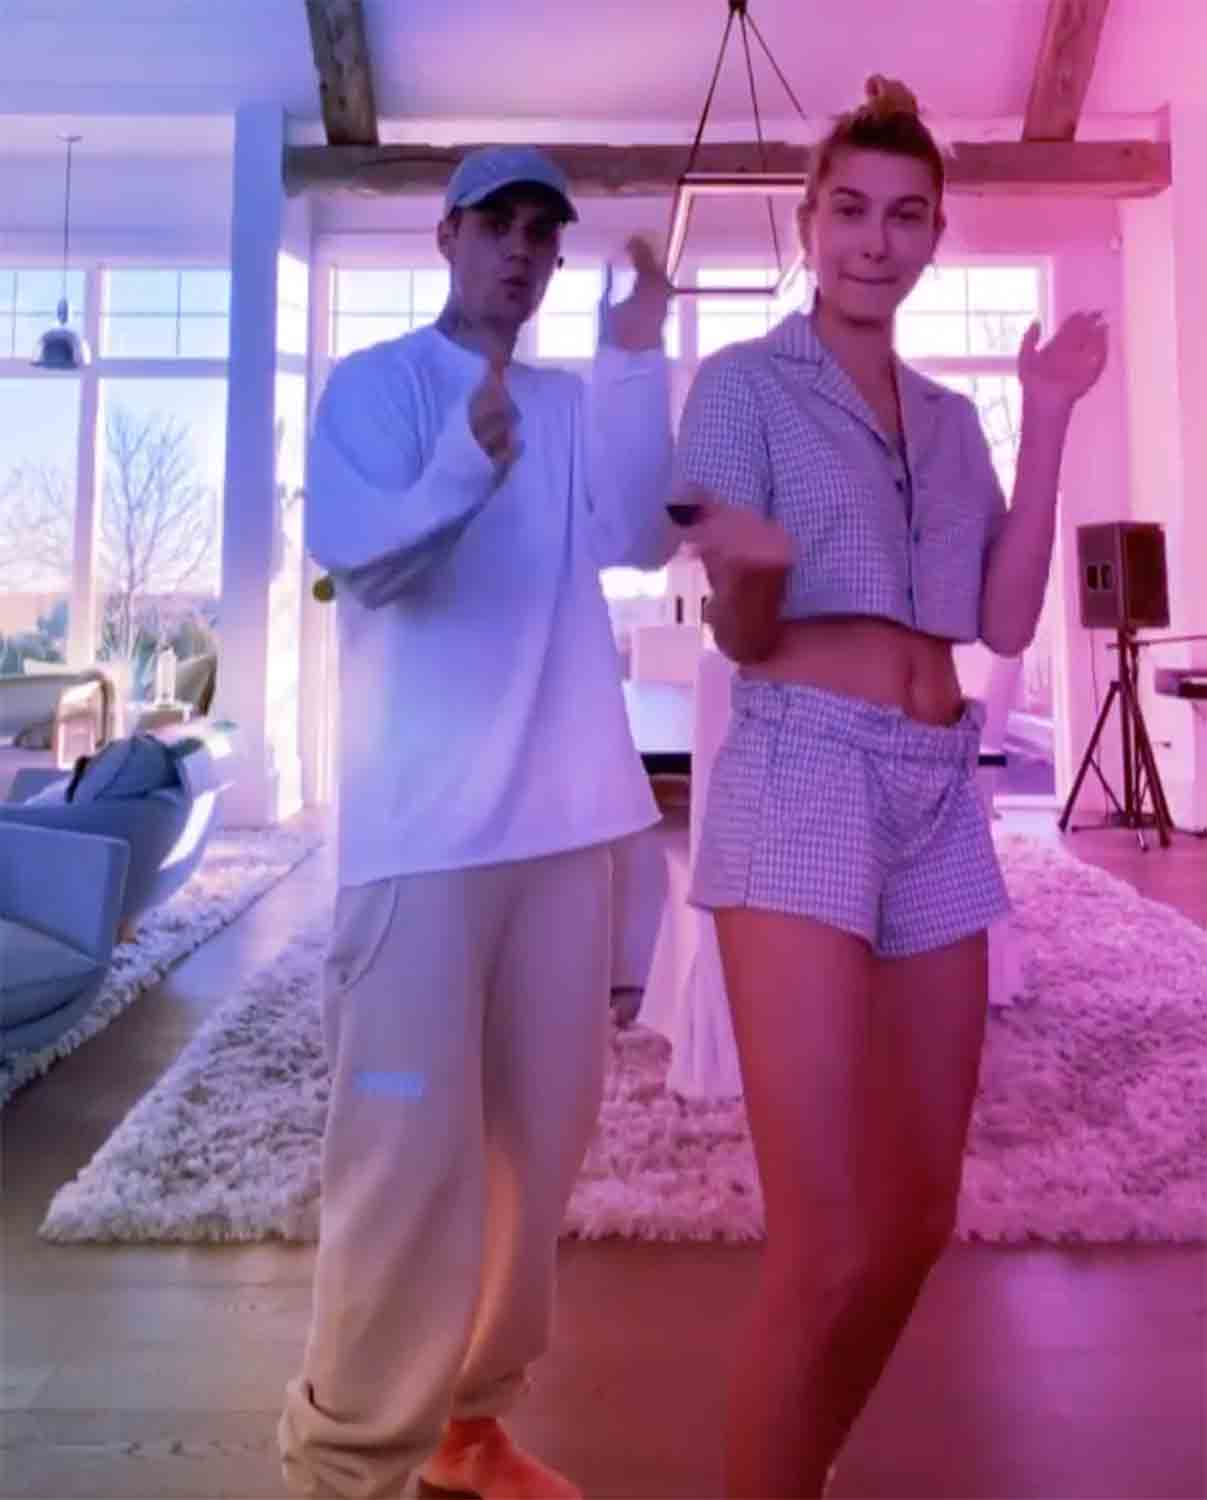 celebs at home Justin Bieber Hailey Baldwin